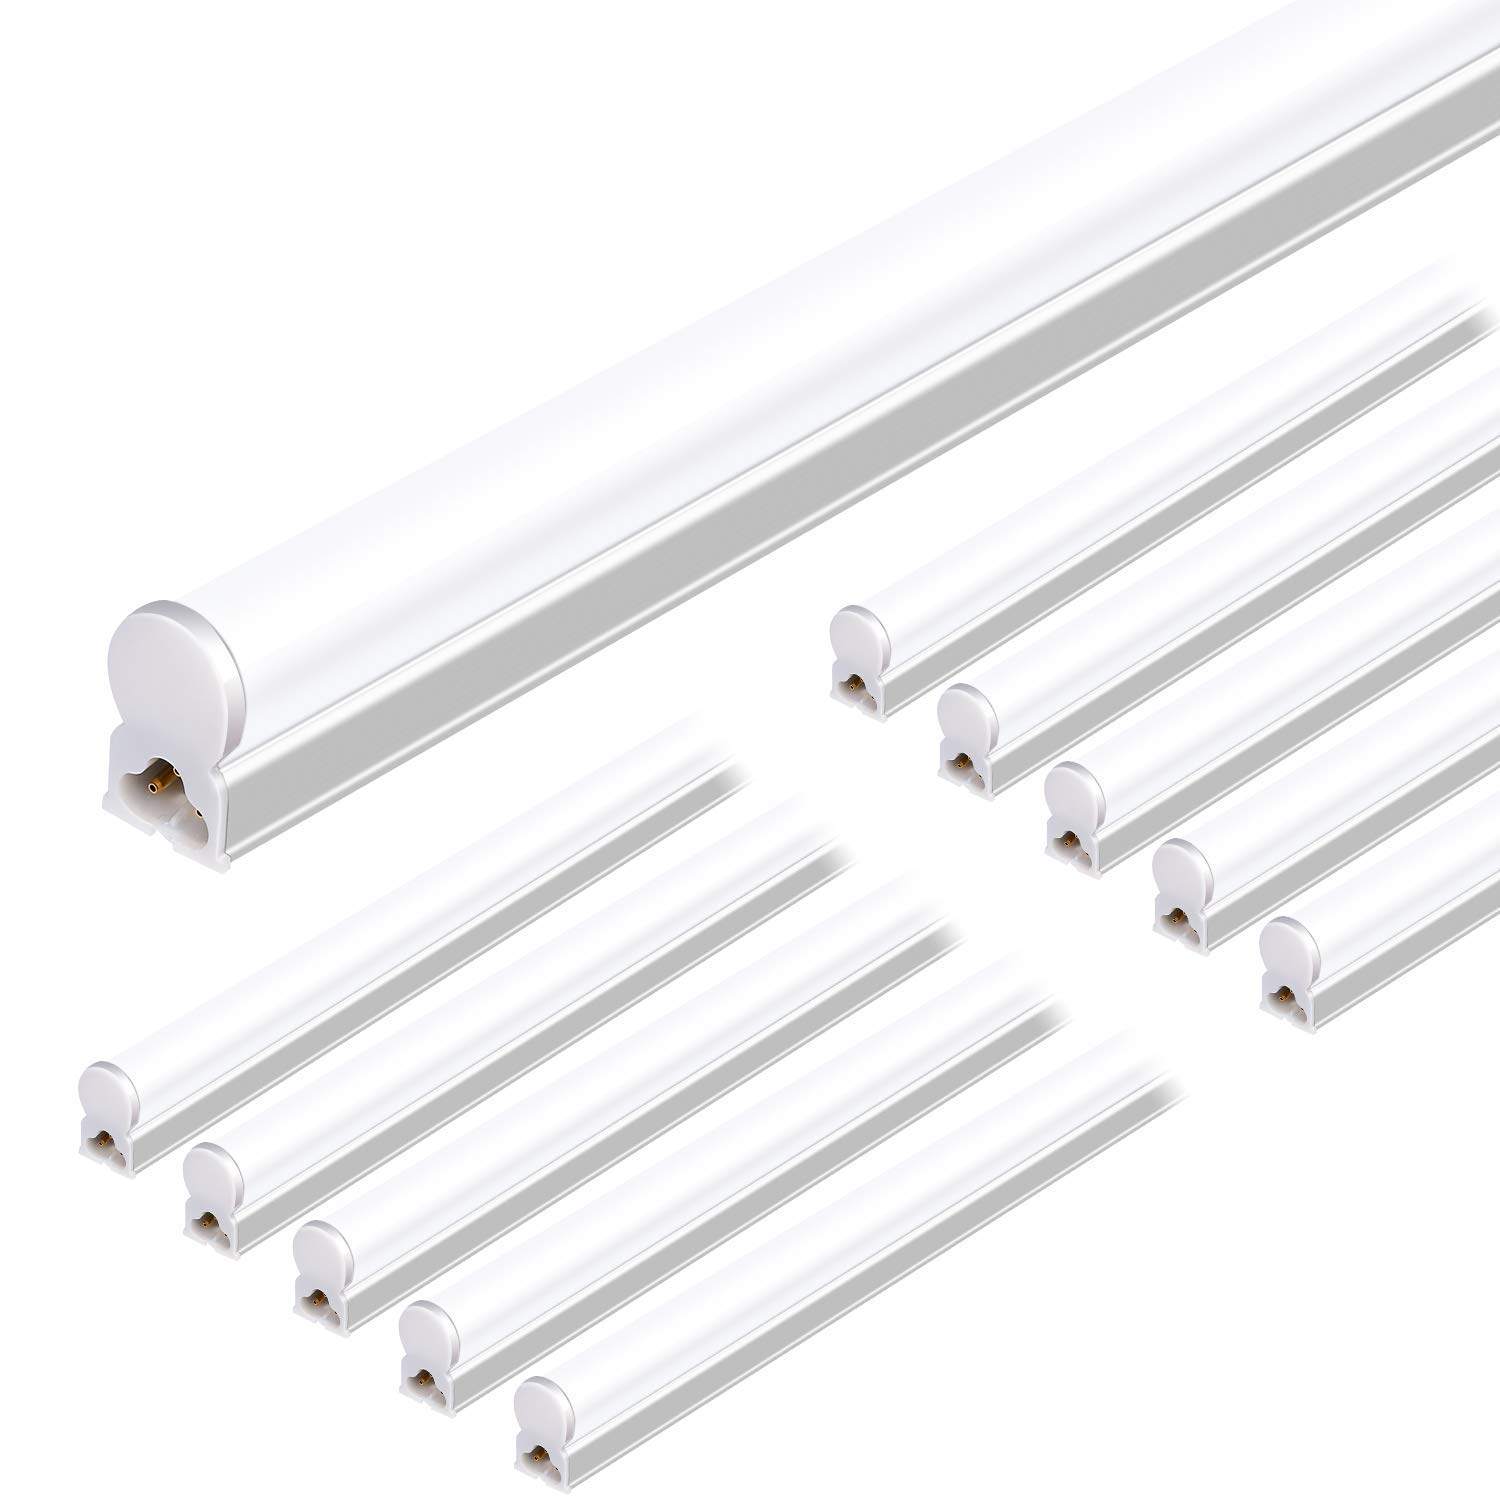 Hykolity Integrated LED T5 Single Light Fixture, 4FT, 22W, 2200lm, 5000K, Linkable LED Shop Light Ceiling Tube, Corded Electric with Built-in ON/Off Switch (10 Pack)